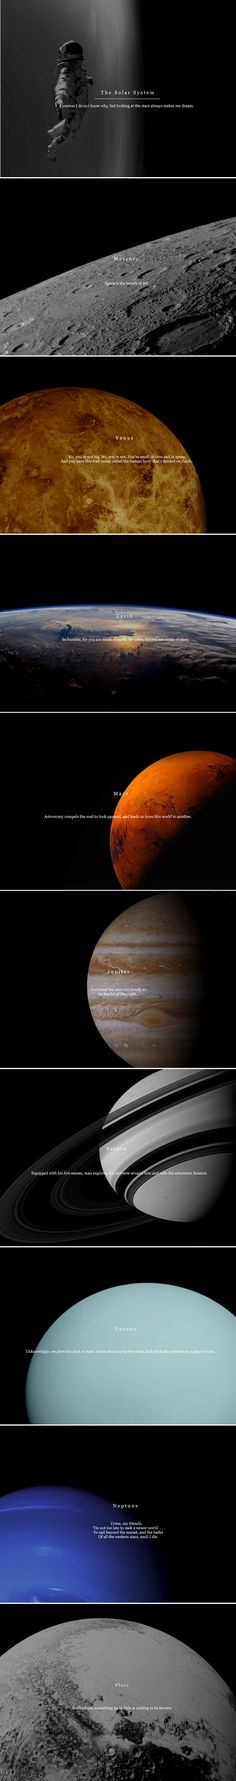 The Solar System + Pluto: Someday death will take us to another star